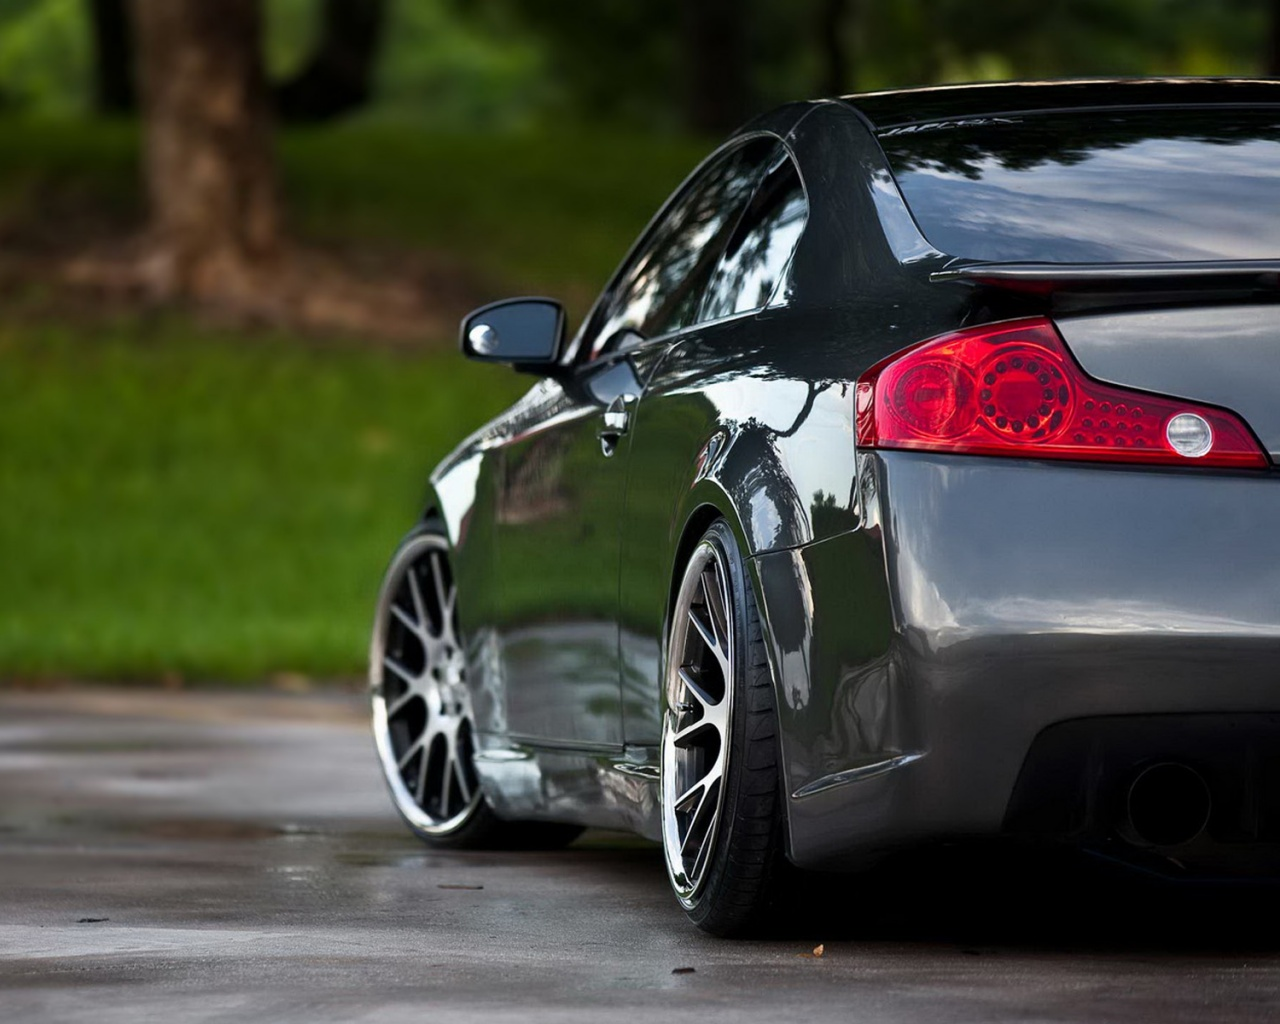 Description: The Wallpaper above is Infiniti g35 tuning car Wallpaper in Resolution 1280x1024. Choose your Resolution and Download Infiniti g35 tuning car ...